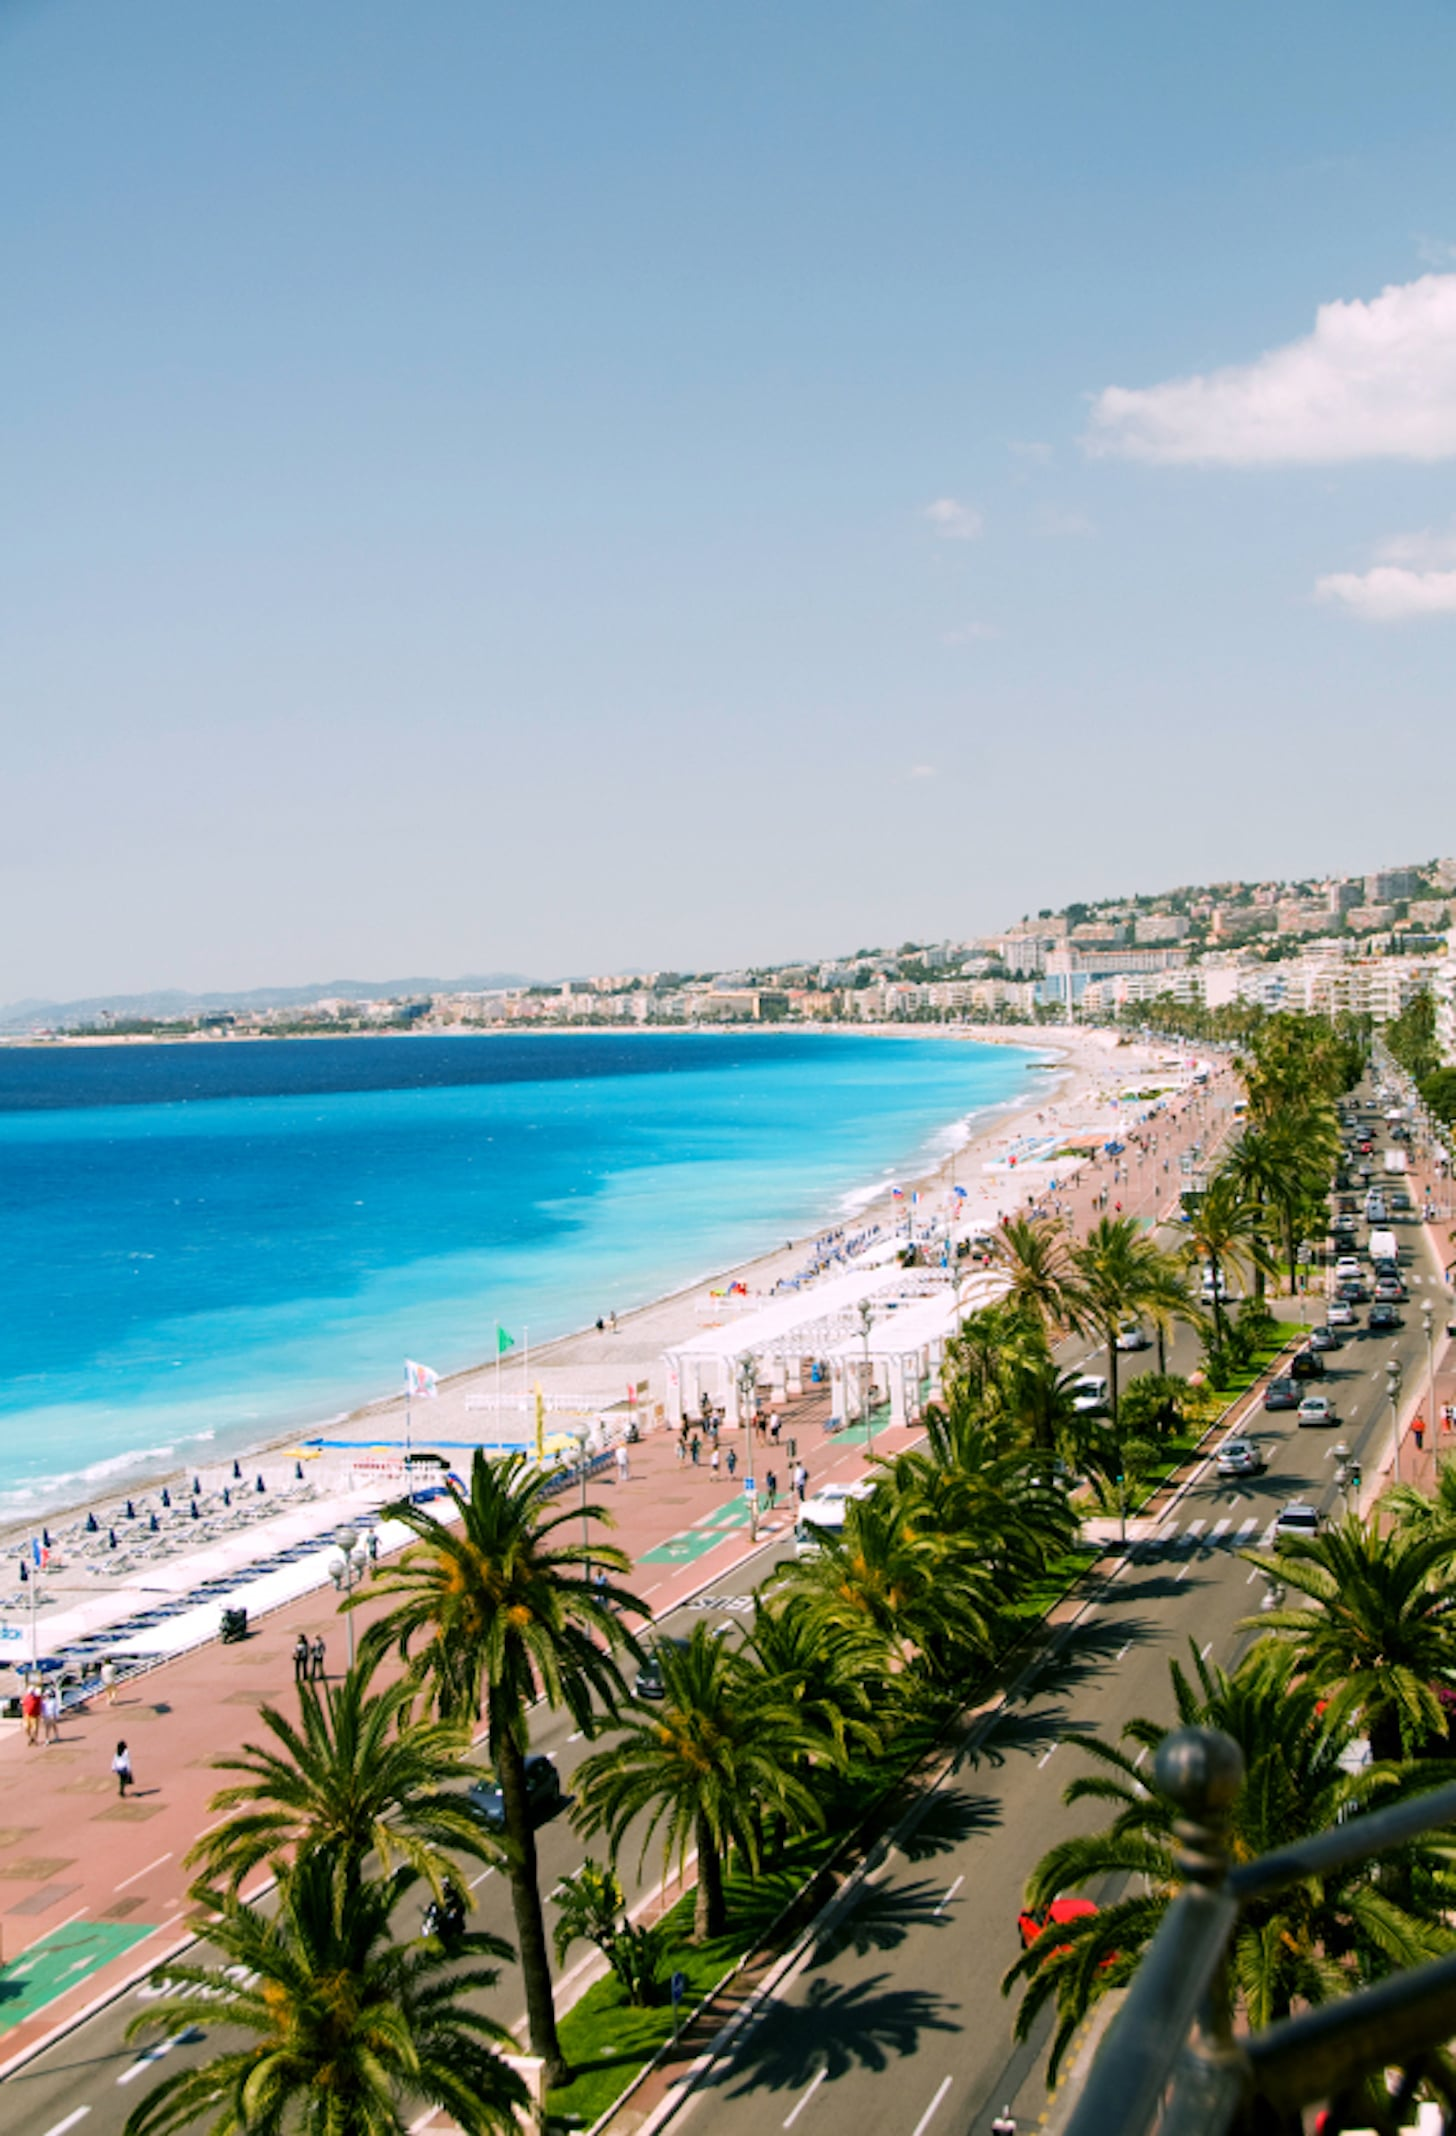 The French Riviera Cote d'azur Nice France beach on famous Promenade des Anglais hotel lined boulevard